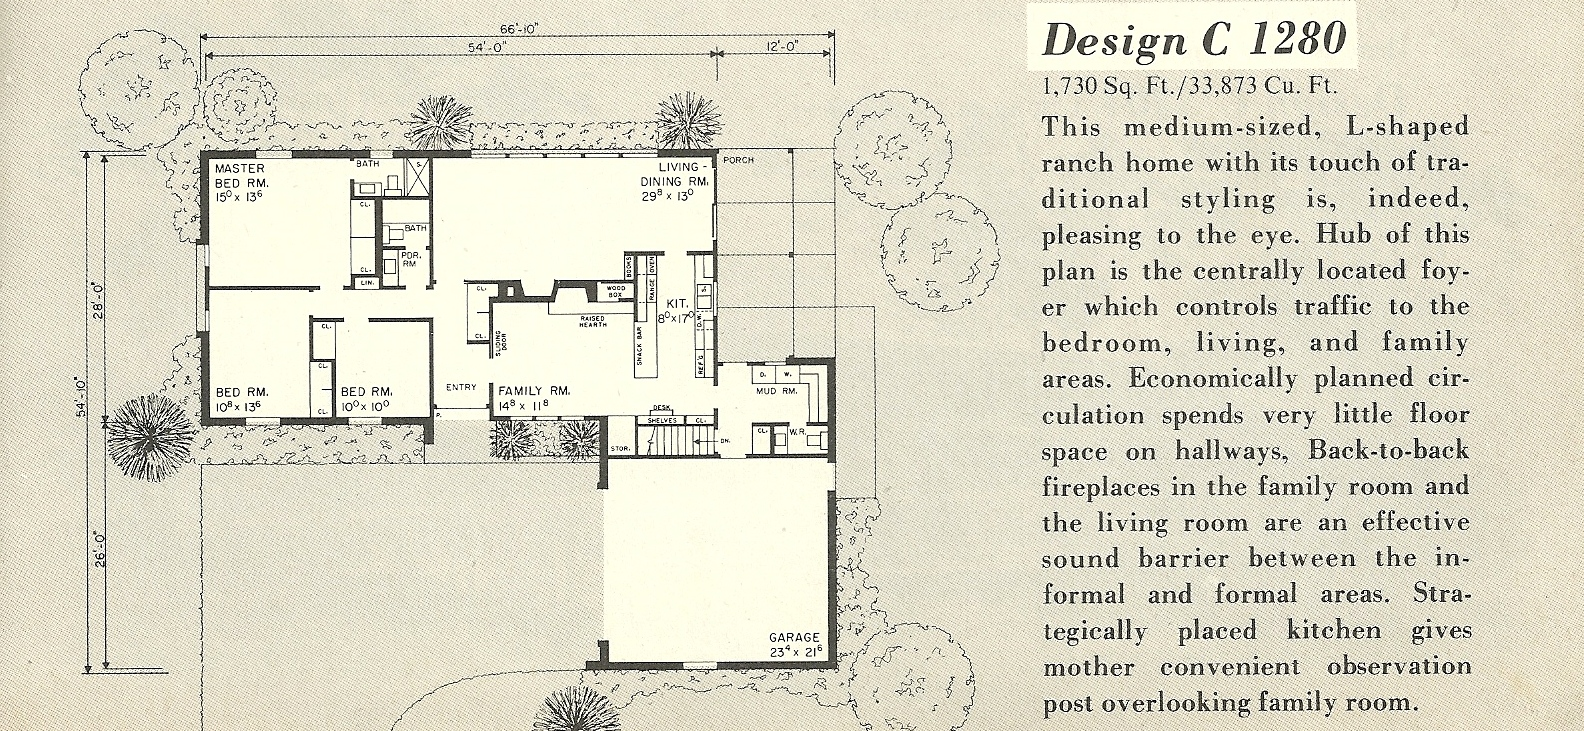 Vintage house plans 1280a antique alter ego 1960s ranch style house plans